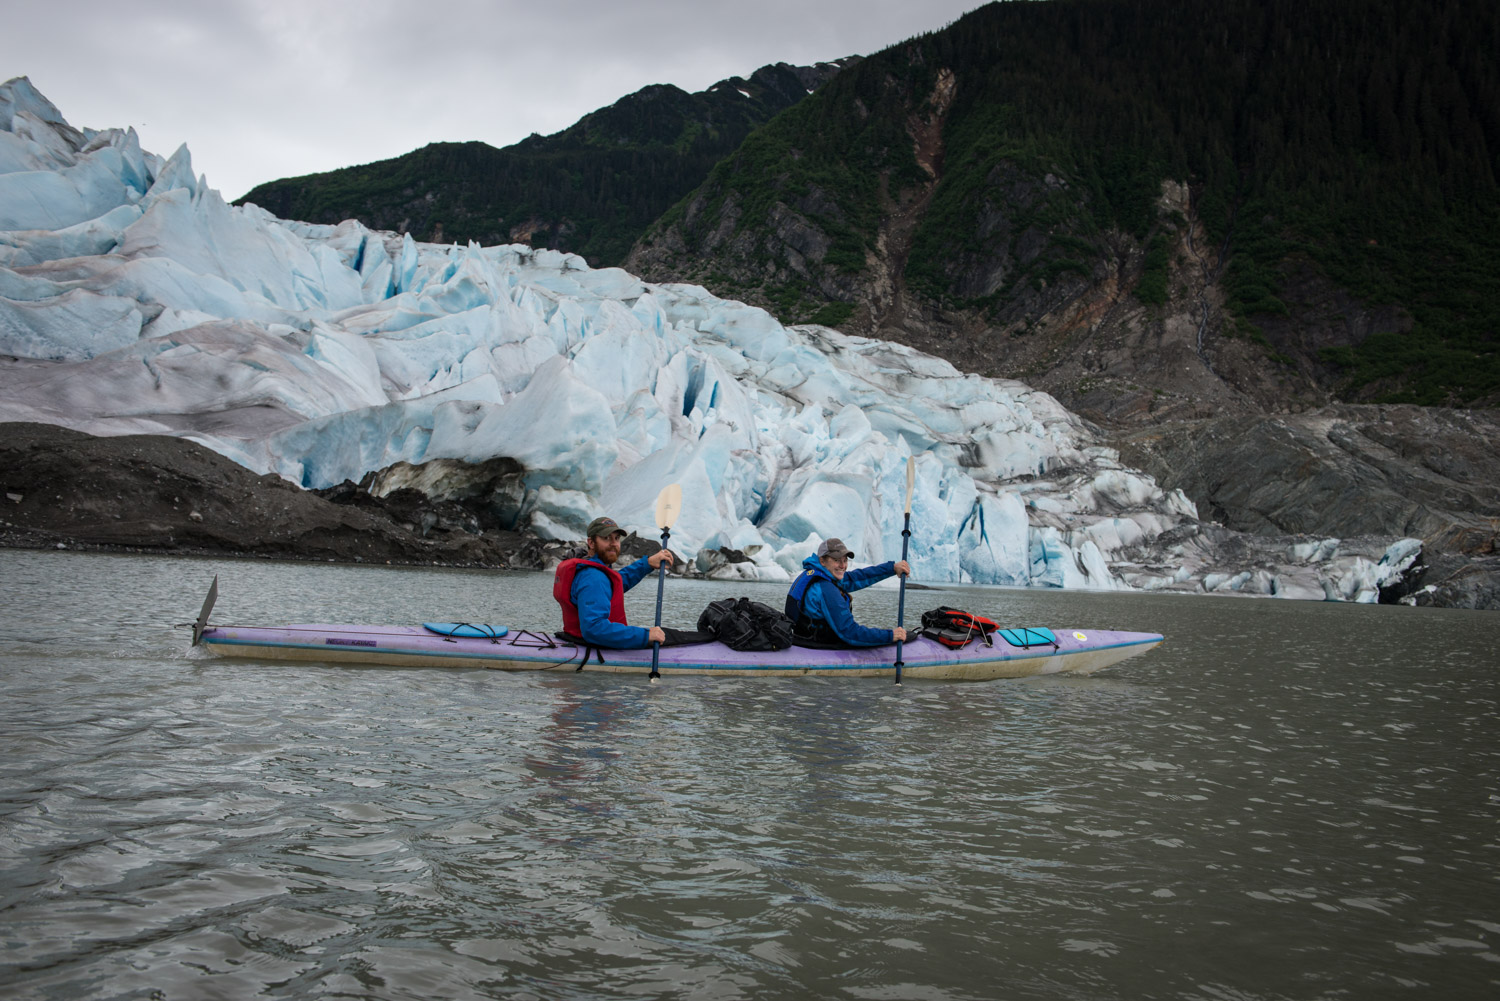 Once at the glacier, we had to beach the kayaks and hike up the side of the mountain.  This glacier is melting so fast it is starting to show signs of a forest that was once underneath it.  Scientists believe the wood under the glacier is over 10,000 years old.